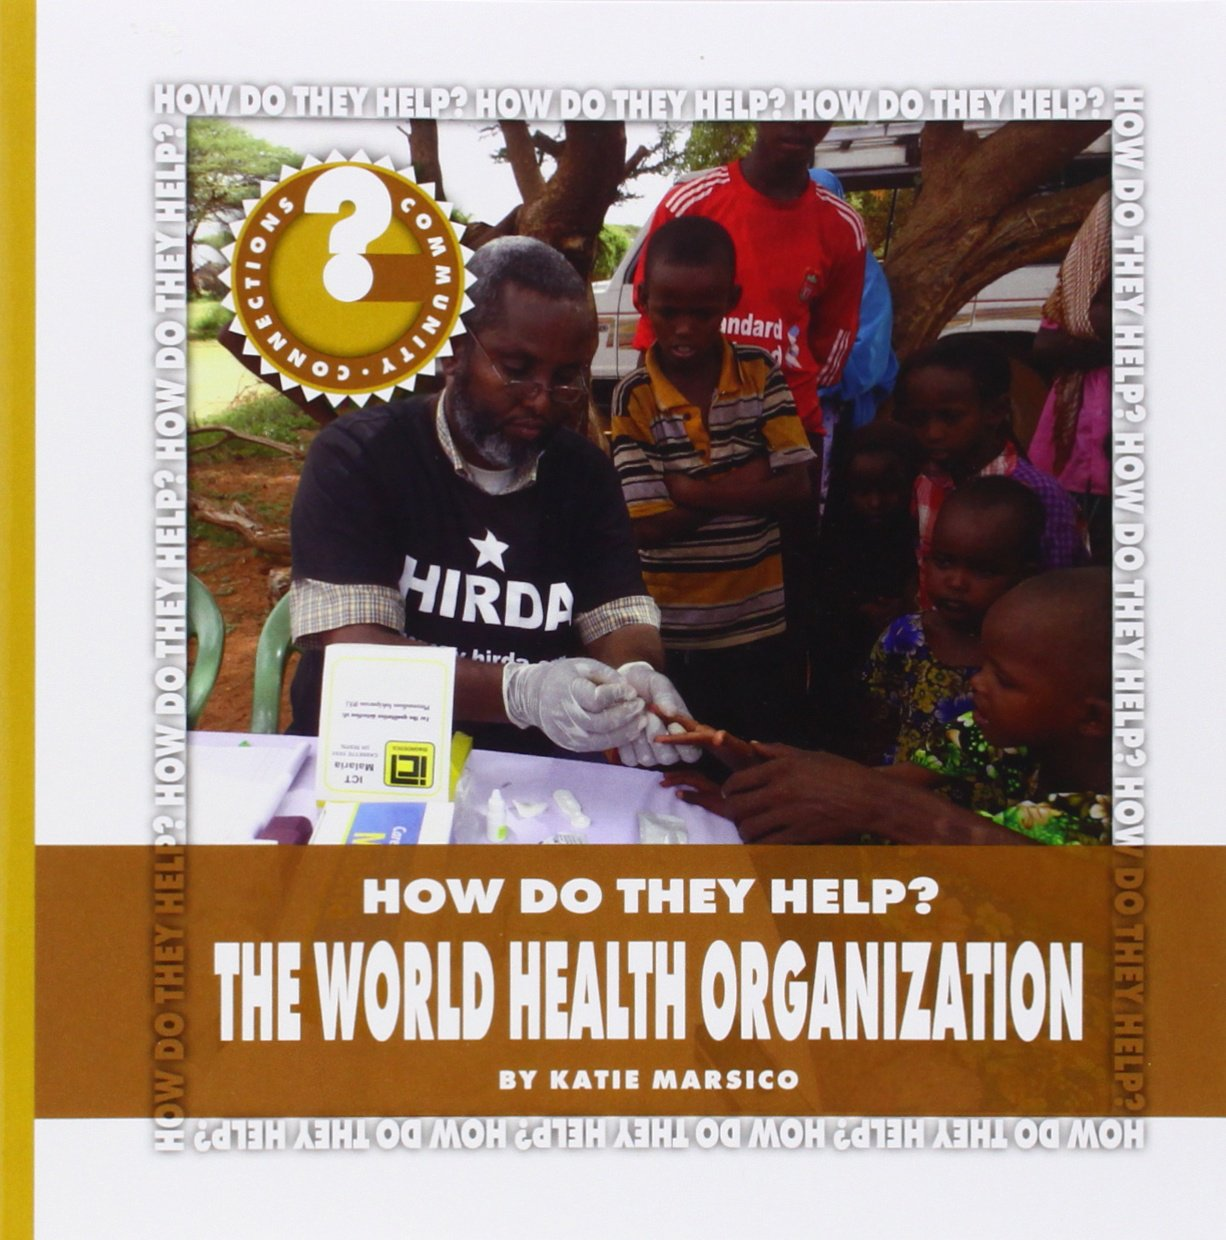 The World Health Organization (Community Connections: How Do They Help?) ebook